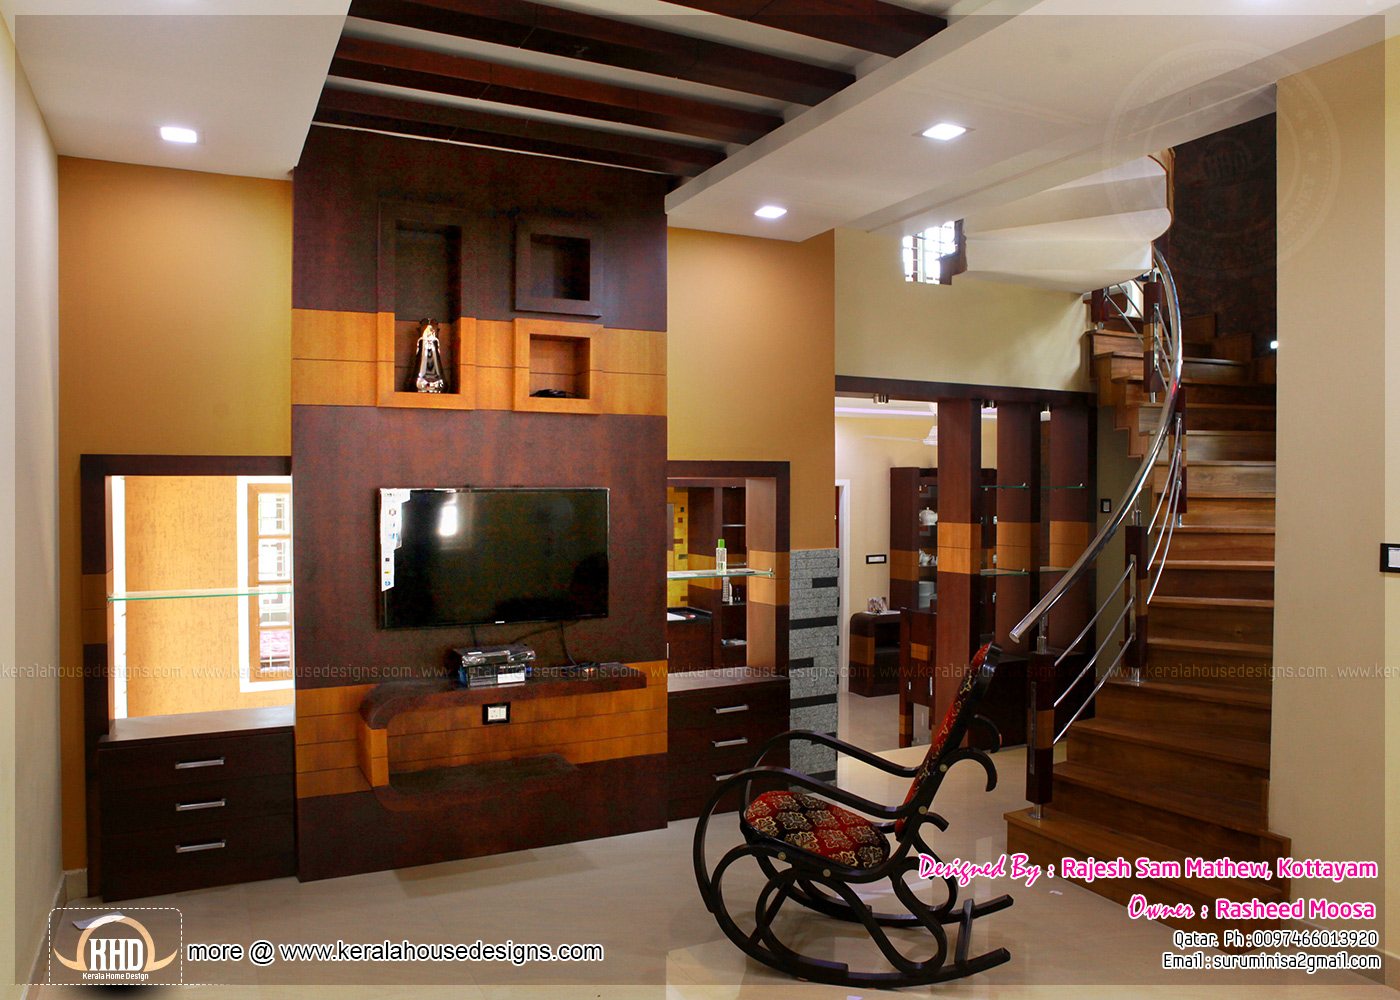 Kerala interior design with photos kerala home design for Interior house design pictures